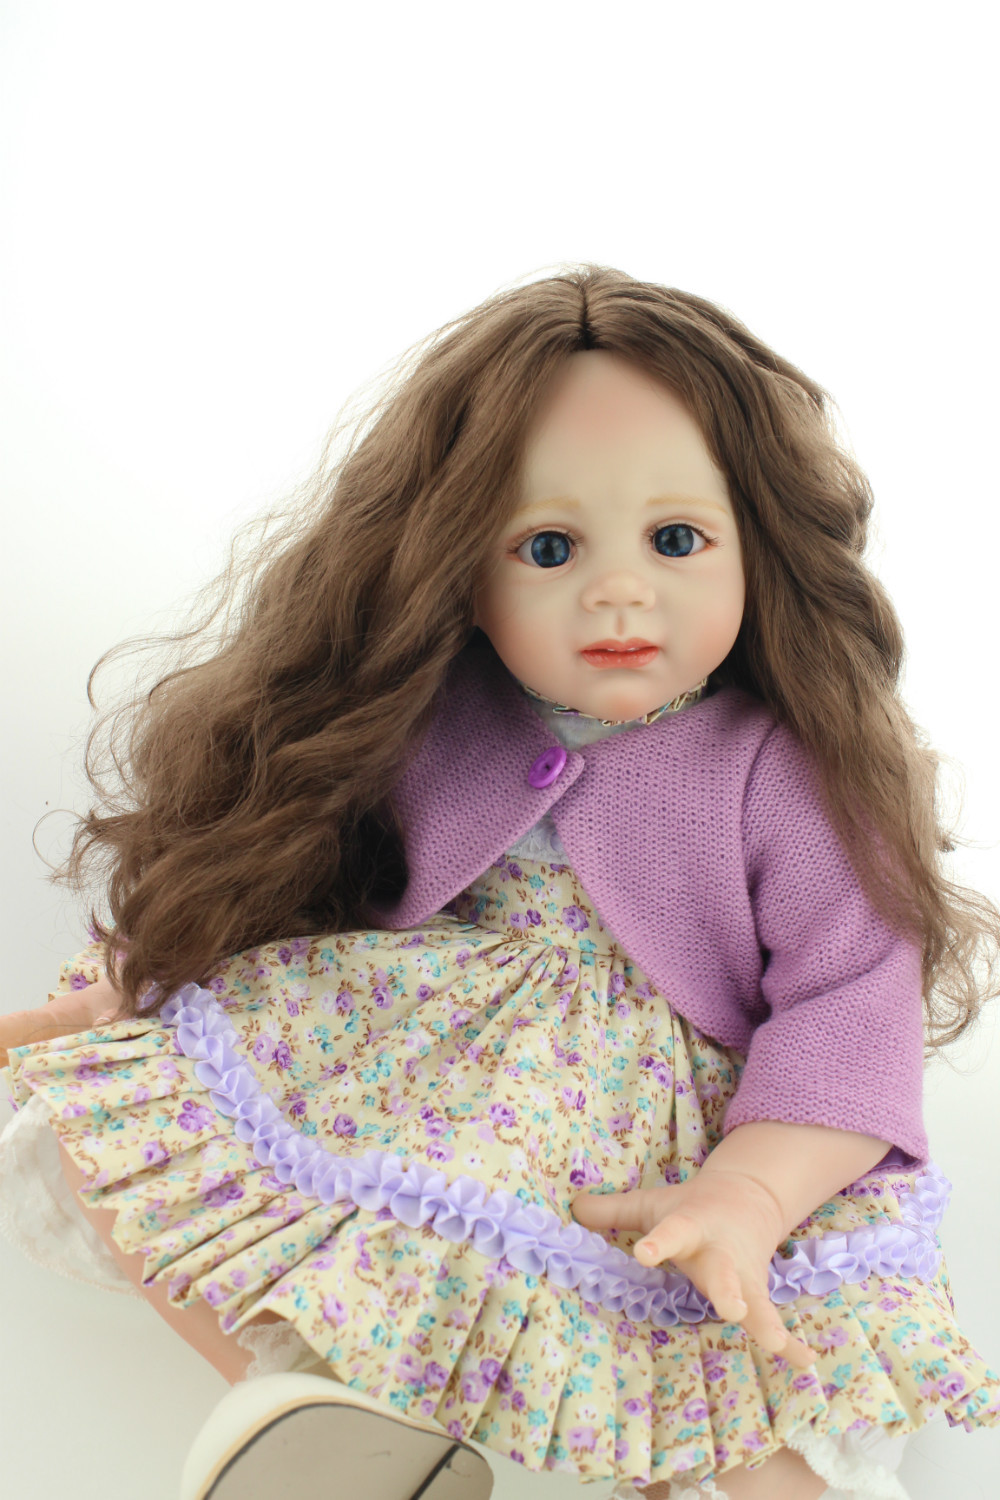 2015 NEW design soft silicone reborn baby doll rooted hair fashion doll Christmas gift and baby toys 2015 new design soft silicone reborn baby doll rooted human hair fashion doll christmas gift